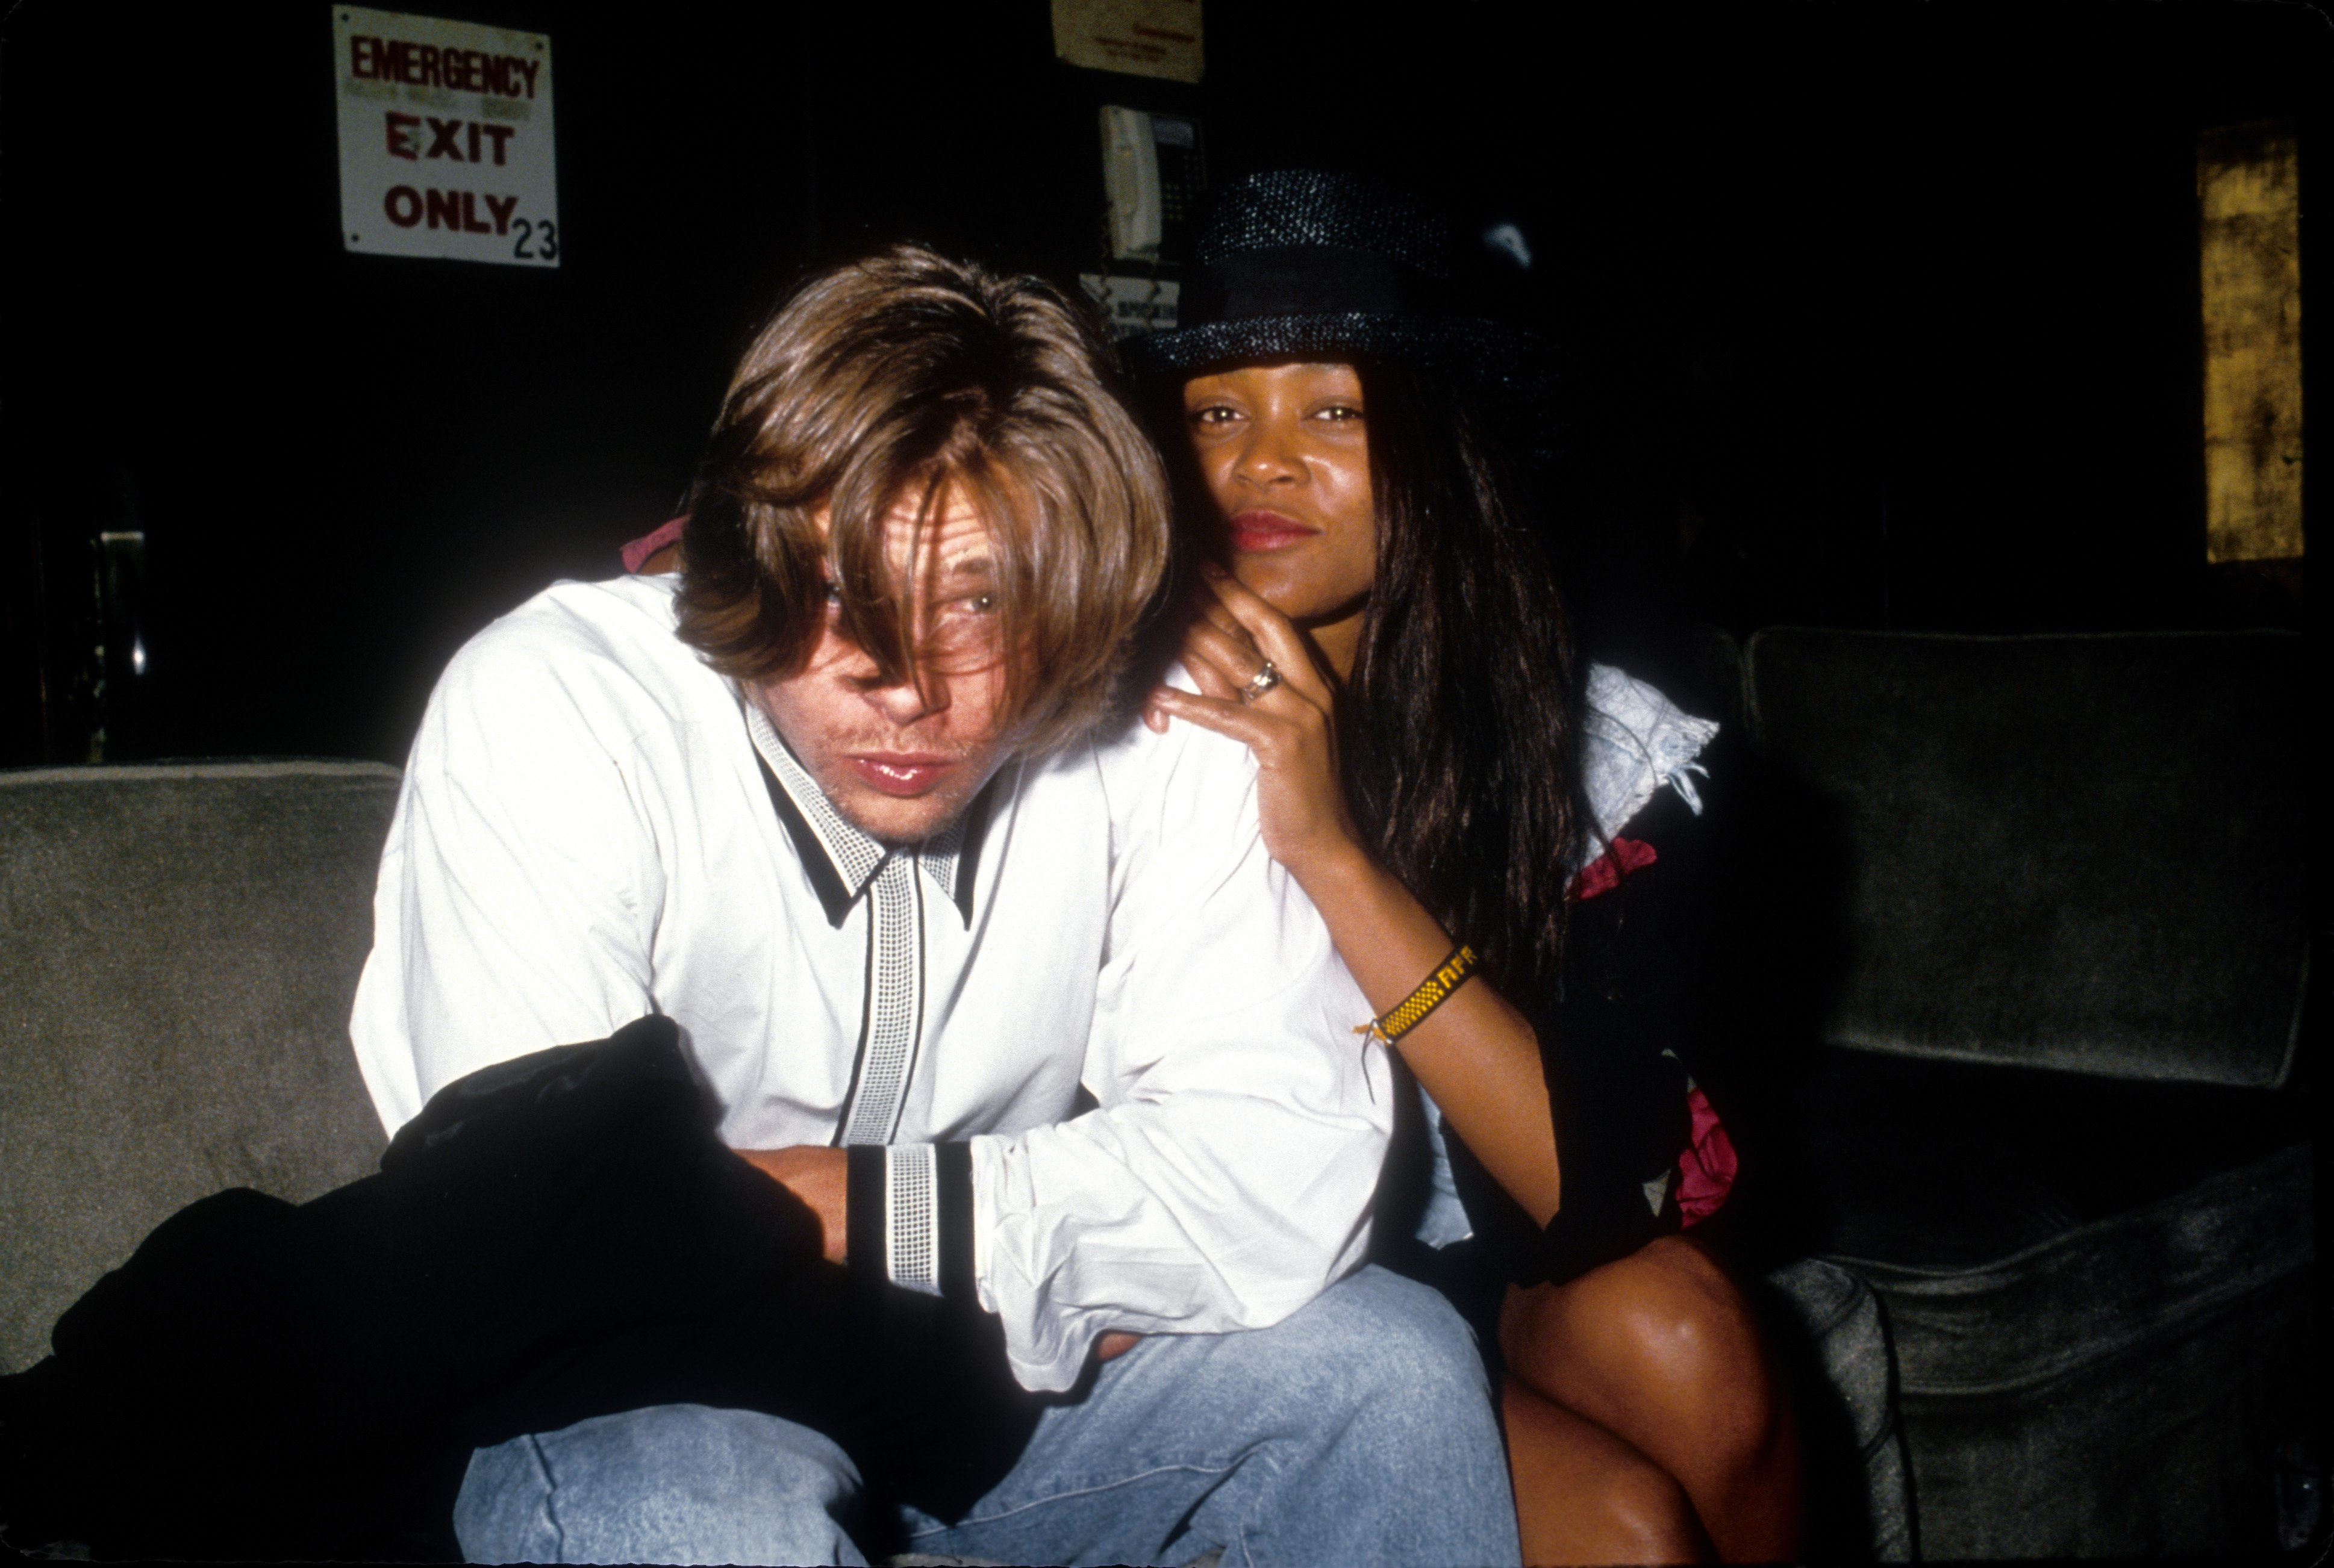 Actors Brad Pitt and Robin Givens pose for a portrait  in Los Angeles, California. Source | Photo: Getty Images